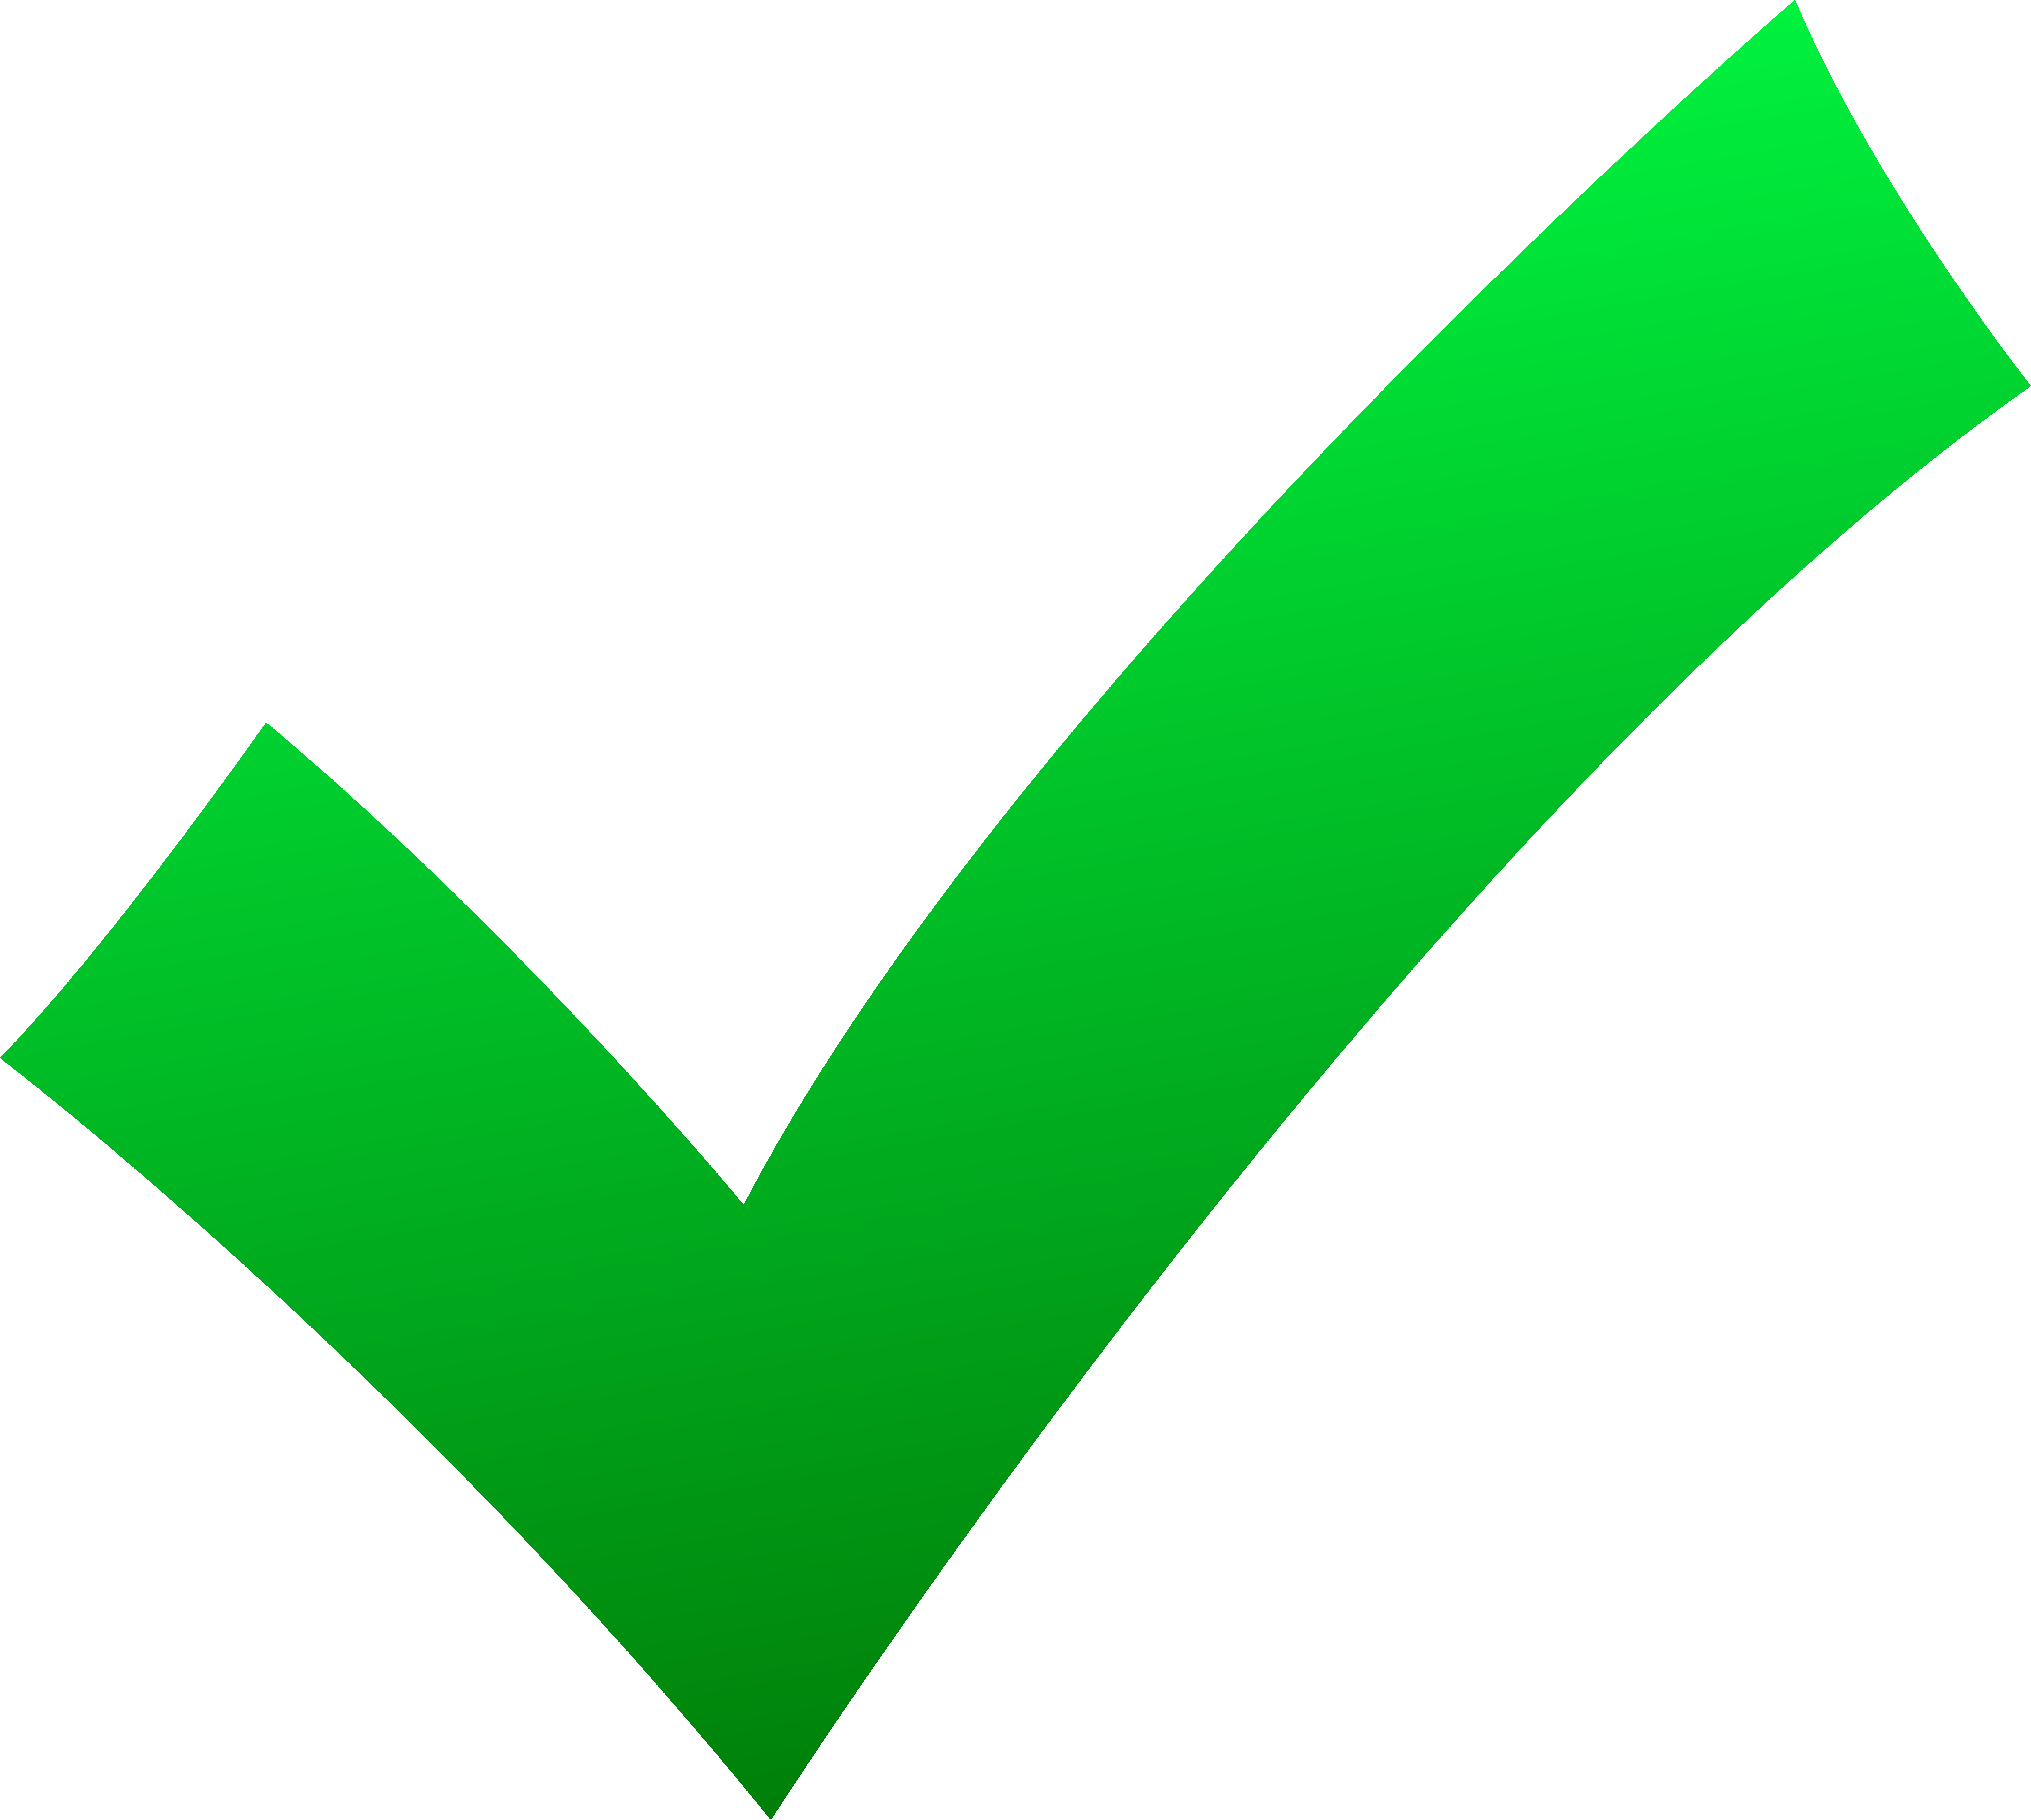 Right mark symbol best. Clipart arrows growth